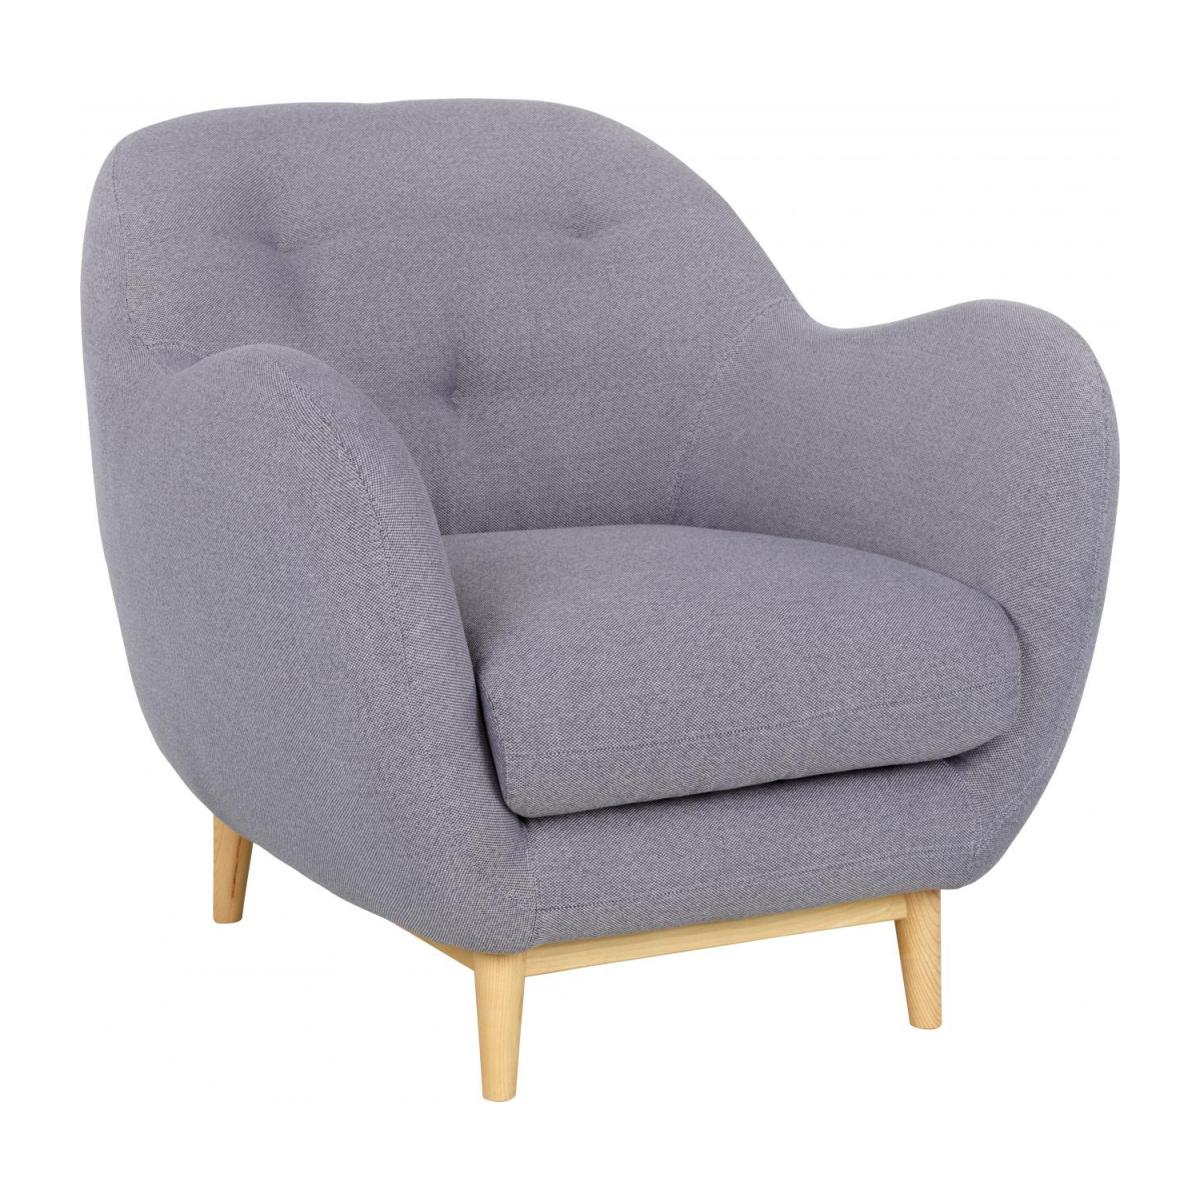 Armchair made of fabric, grey n°1